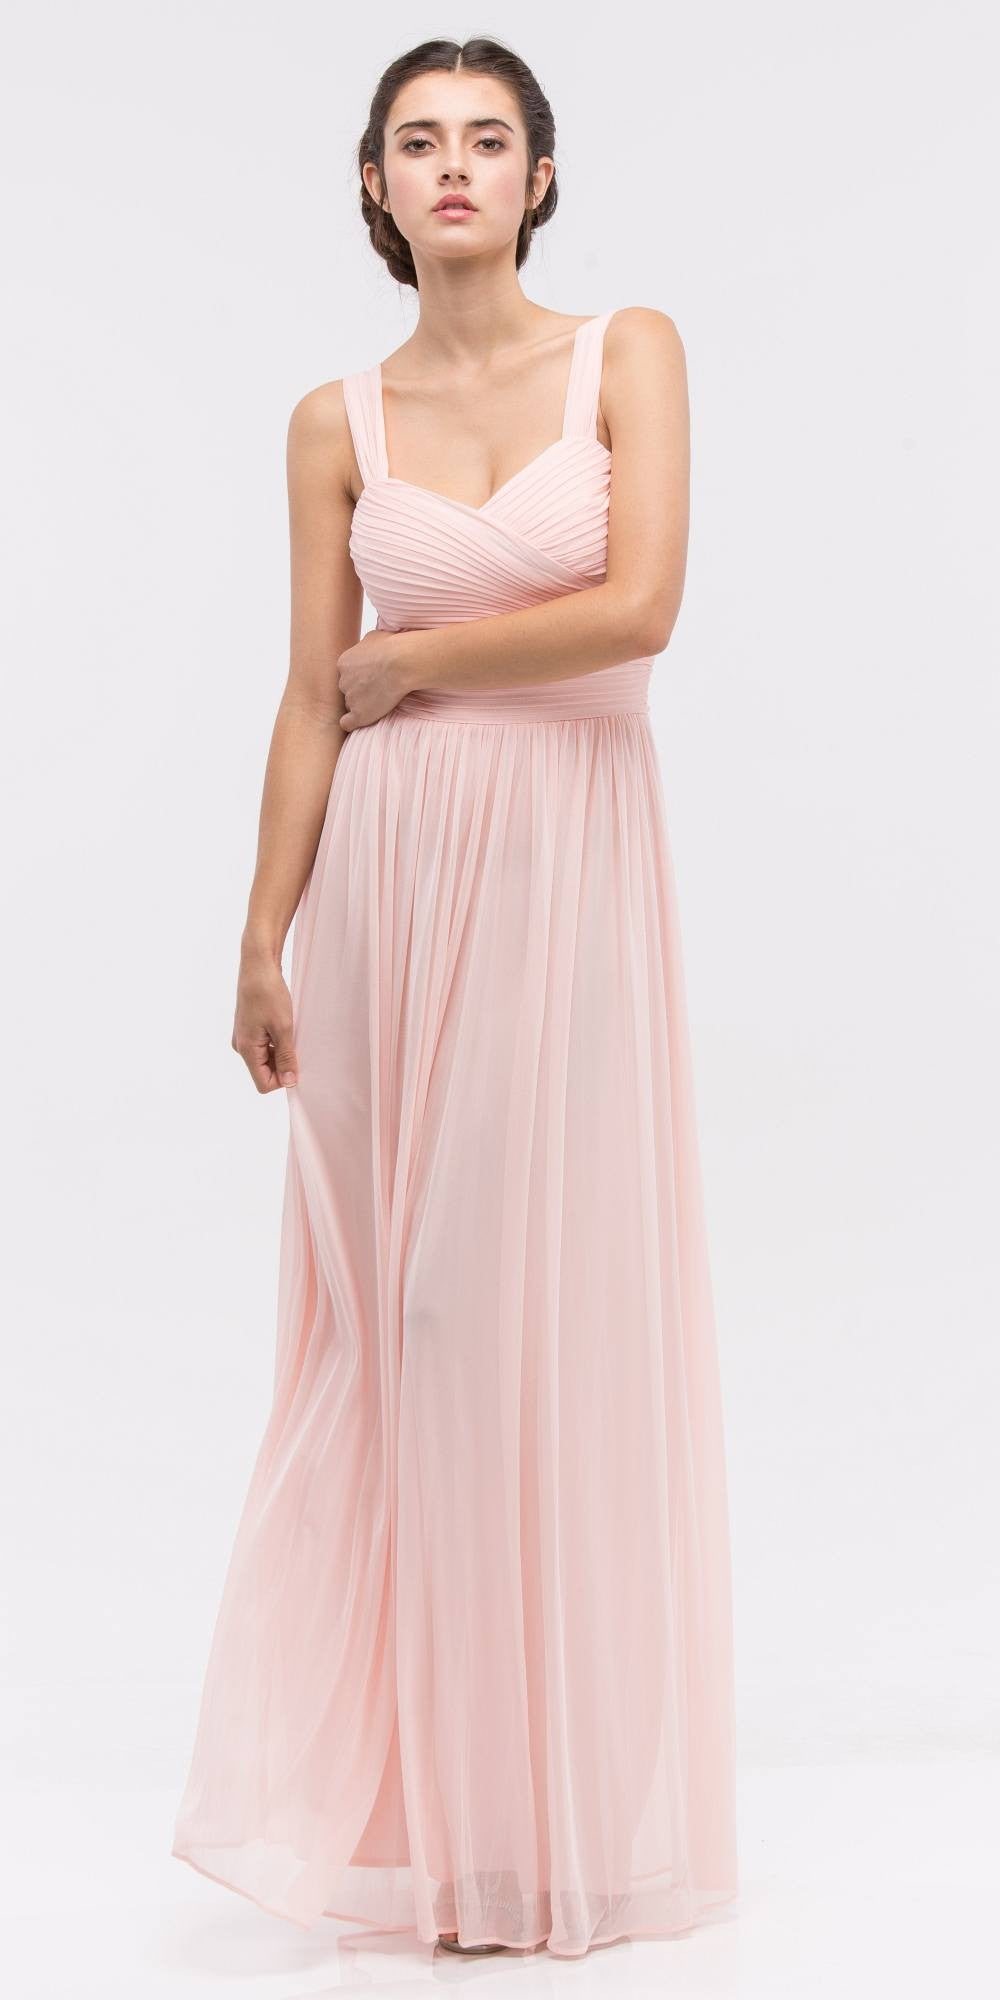 Blush Prom Gown Ruched Bodice Sweetheart Neckline Cut-Out Midriff